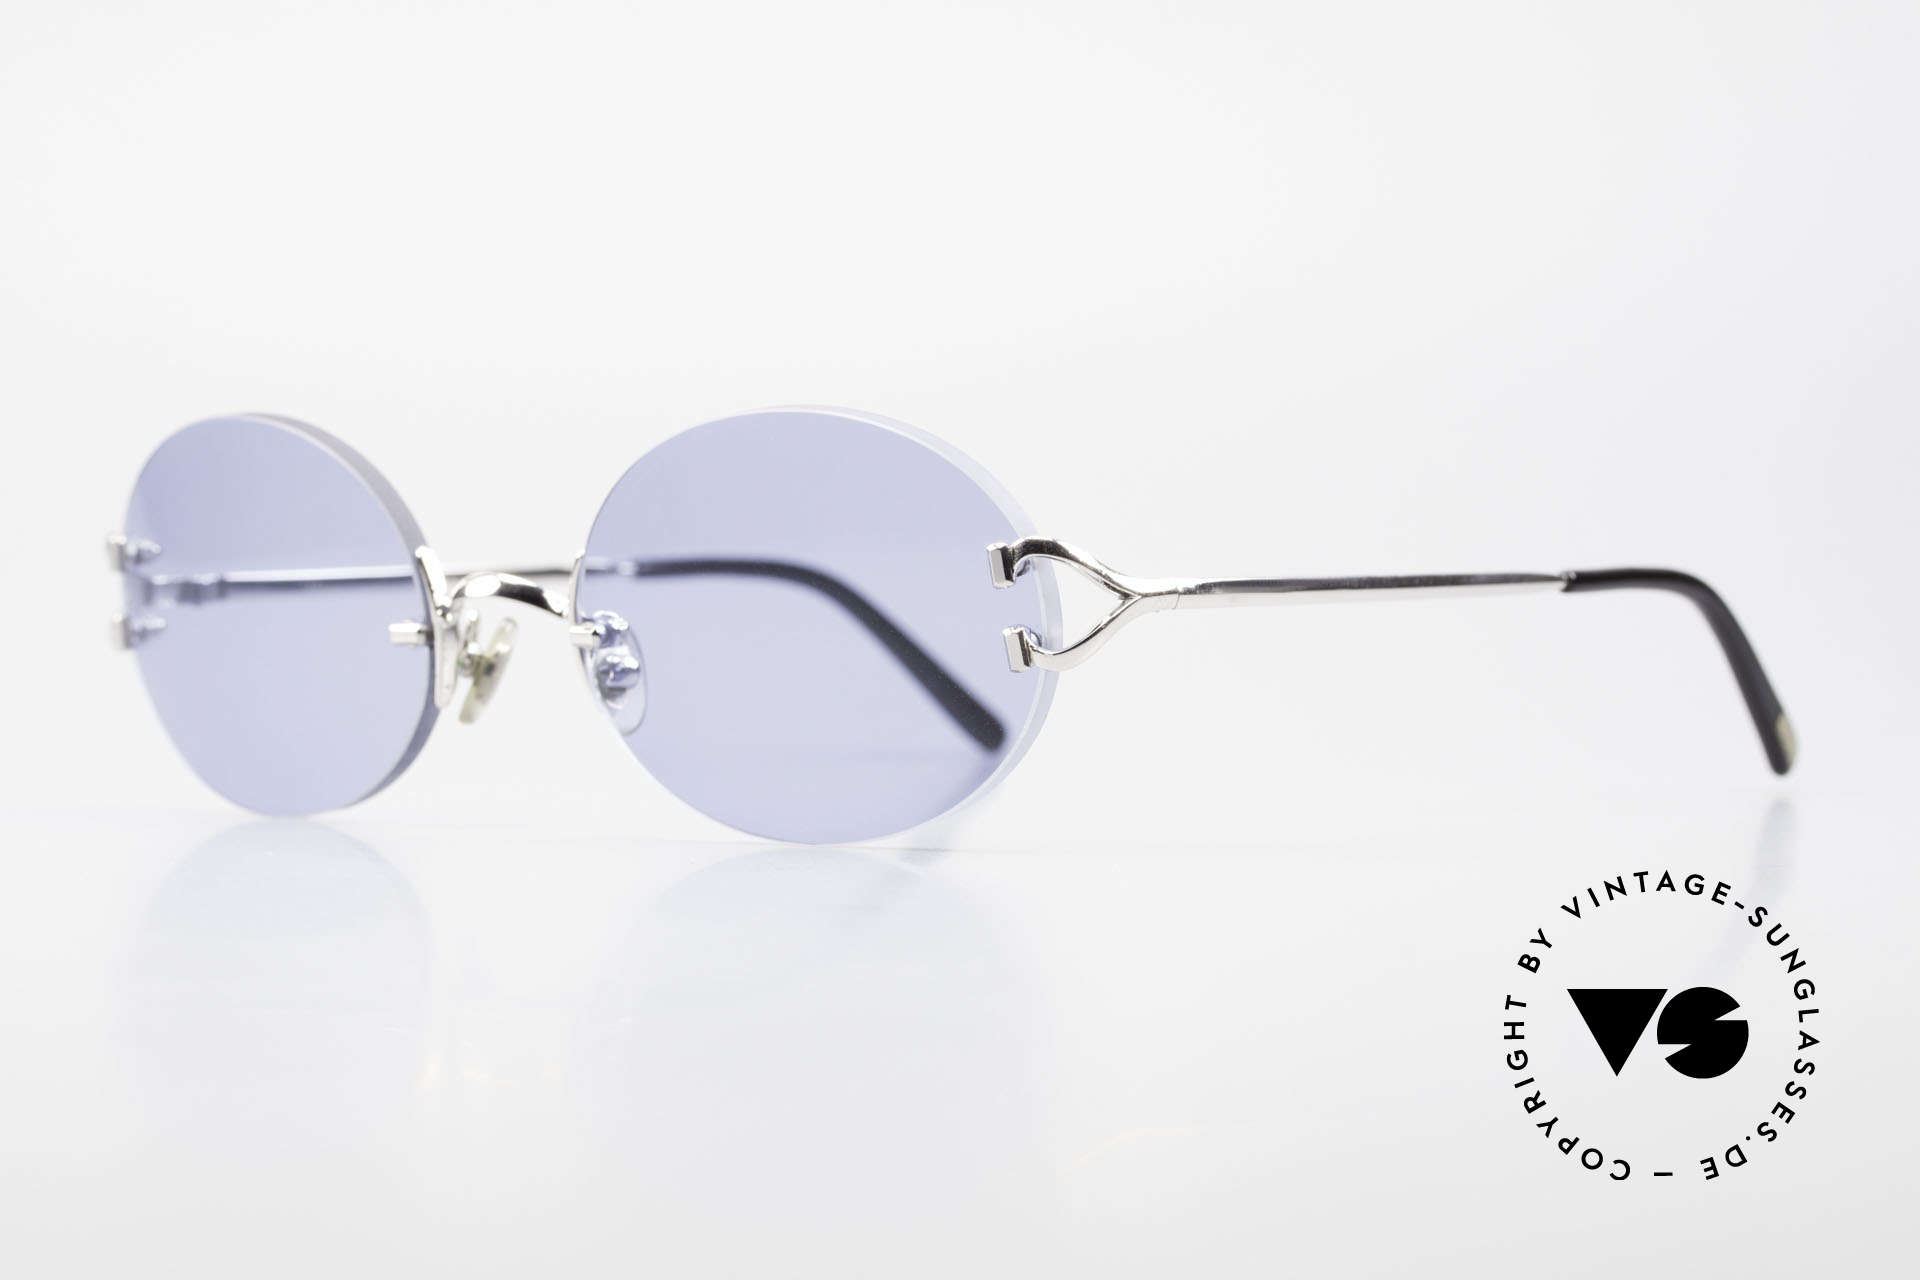 Cartier Rimless Giverny Oval Rimless Luxury Shades, model of the Rimless series with new oval sun lenses, Made for Men and Women